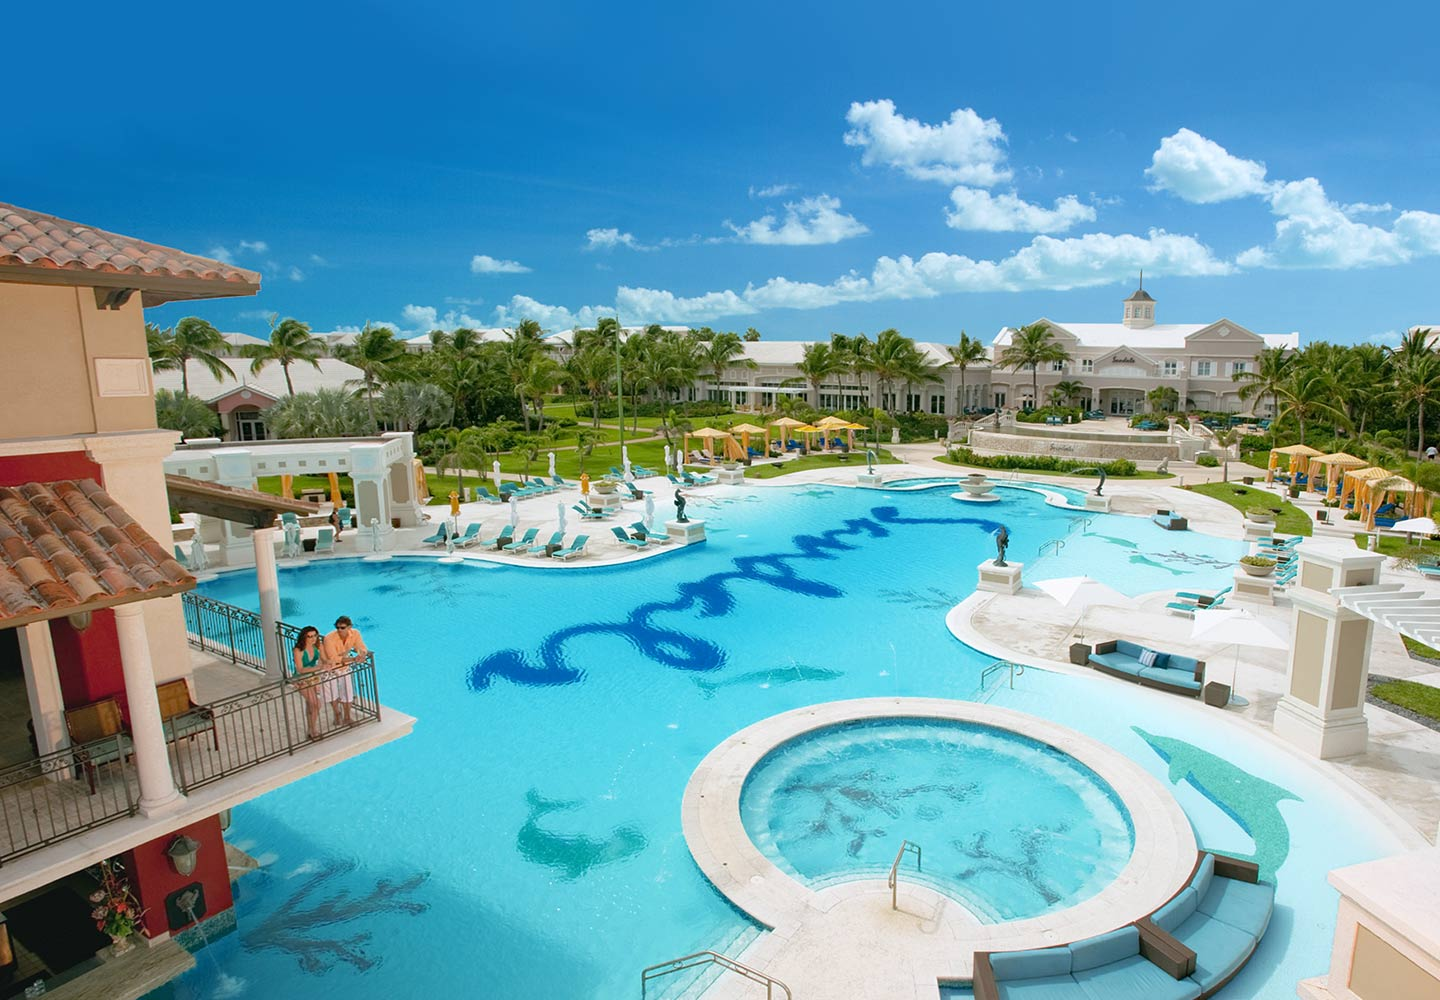 , Sandals Emerald Bay, AMERICAN ACADEMY OF HOSPITALITY SCIENCES